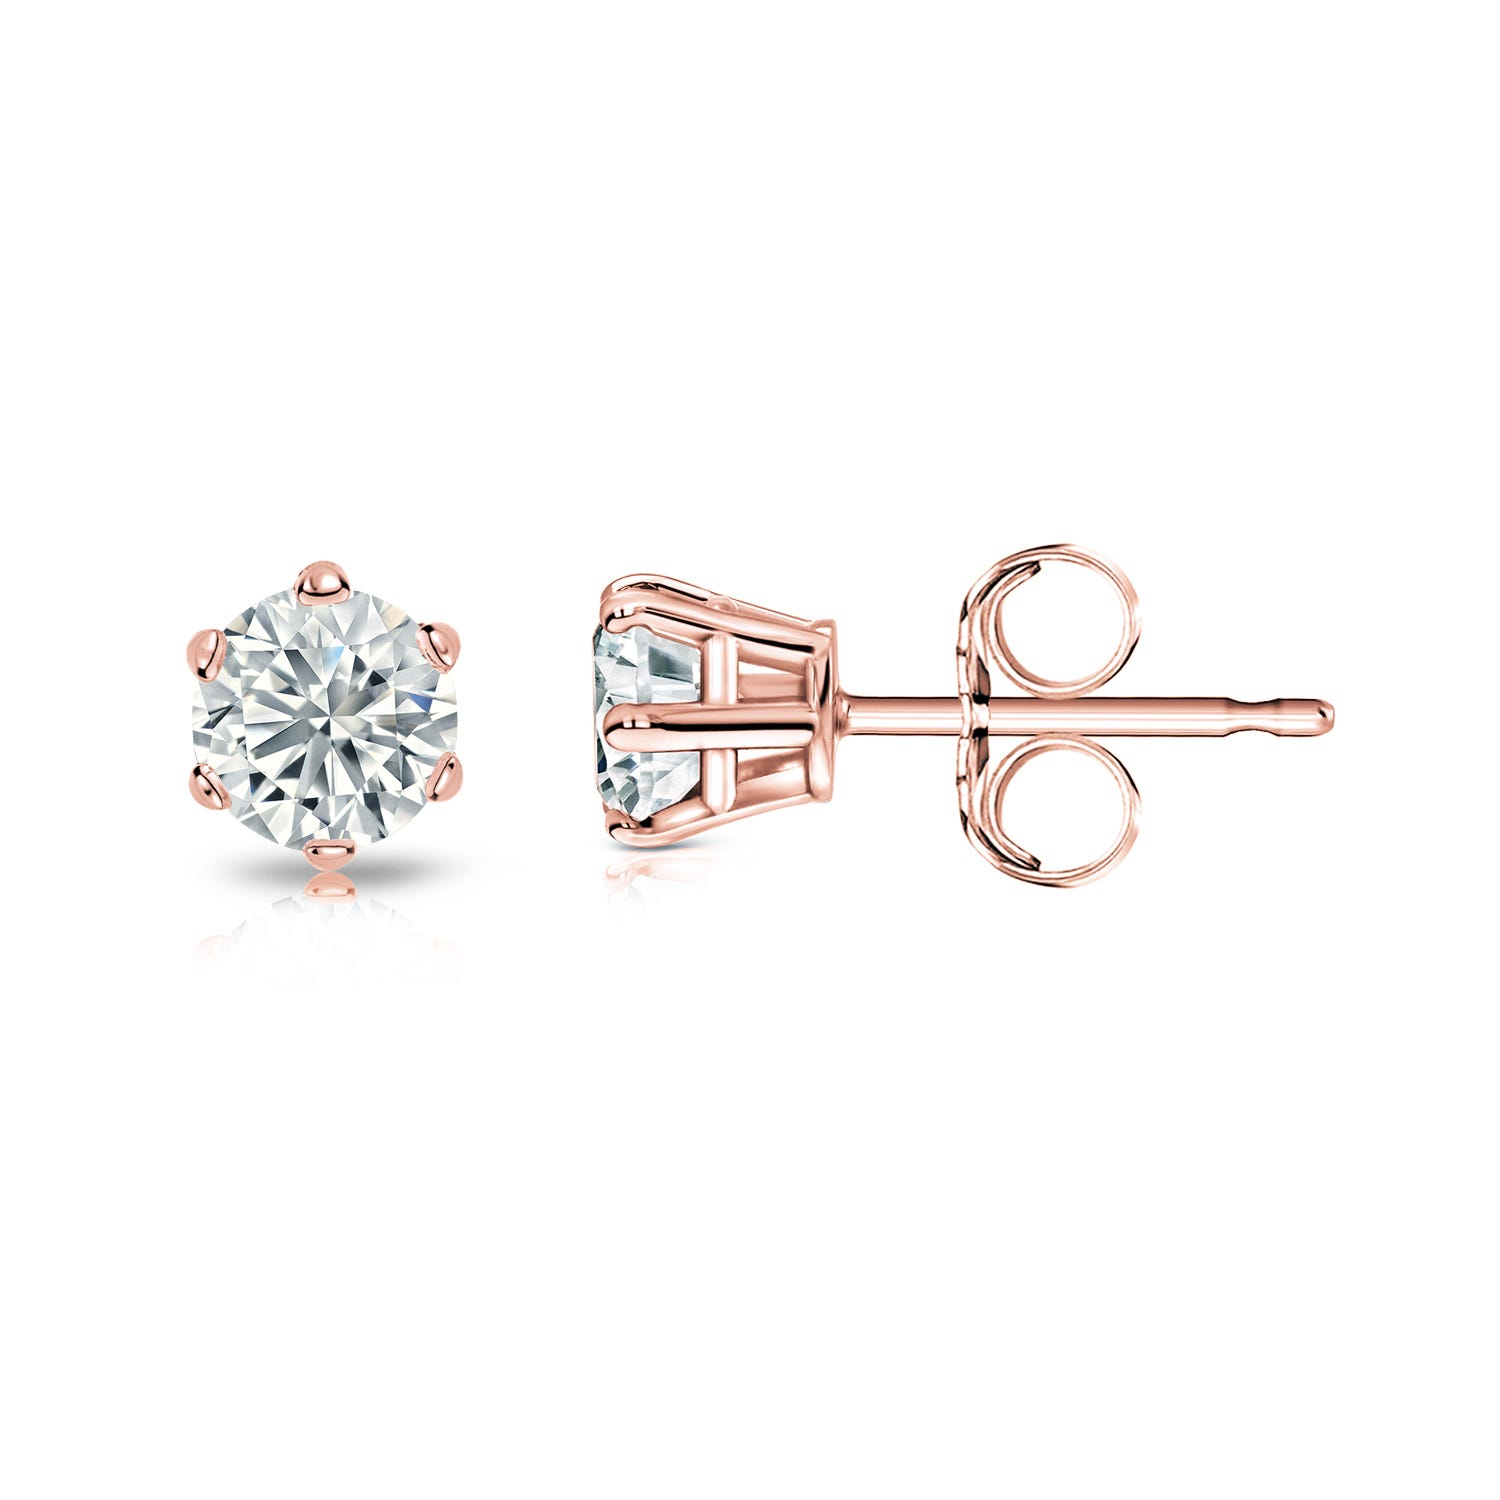 Round Diamond 1/5ctw. (IJ-I2) Solitaire Stud 6-Prong Earrings in 14K Rose Gold